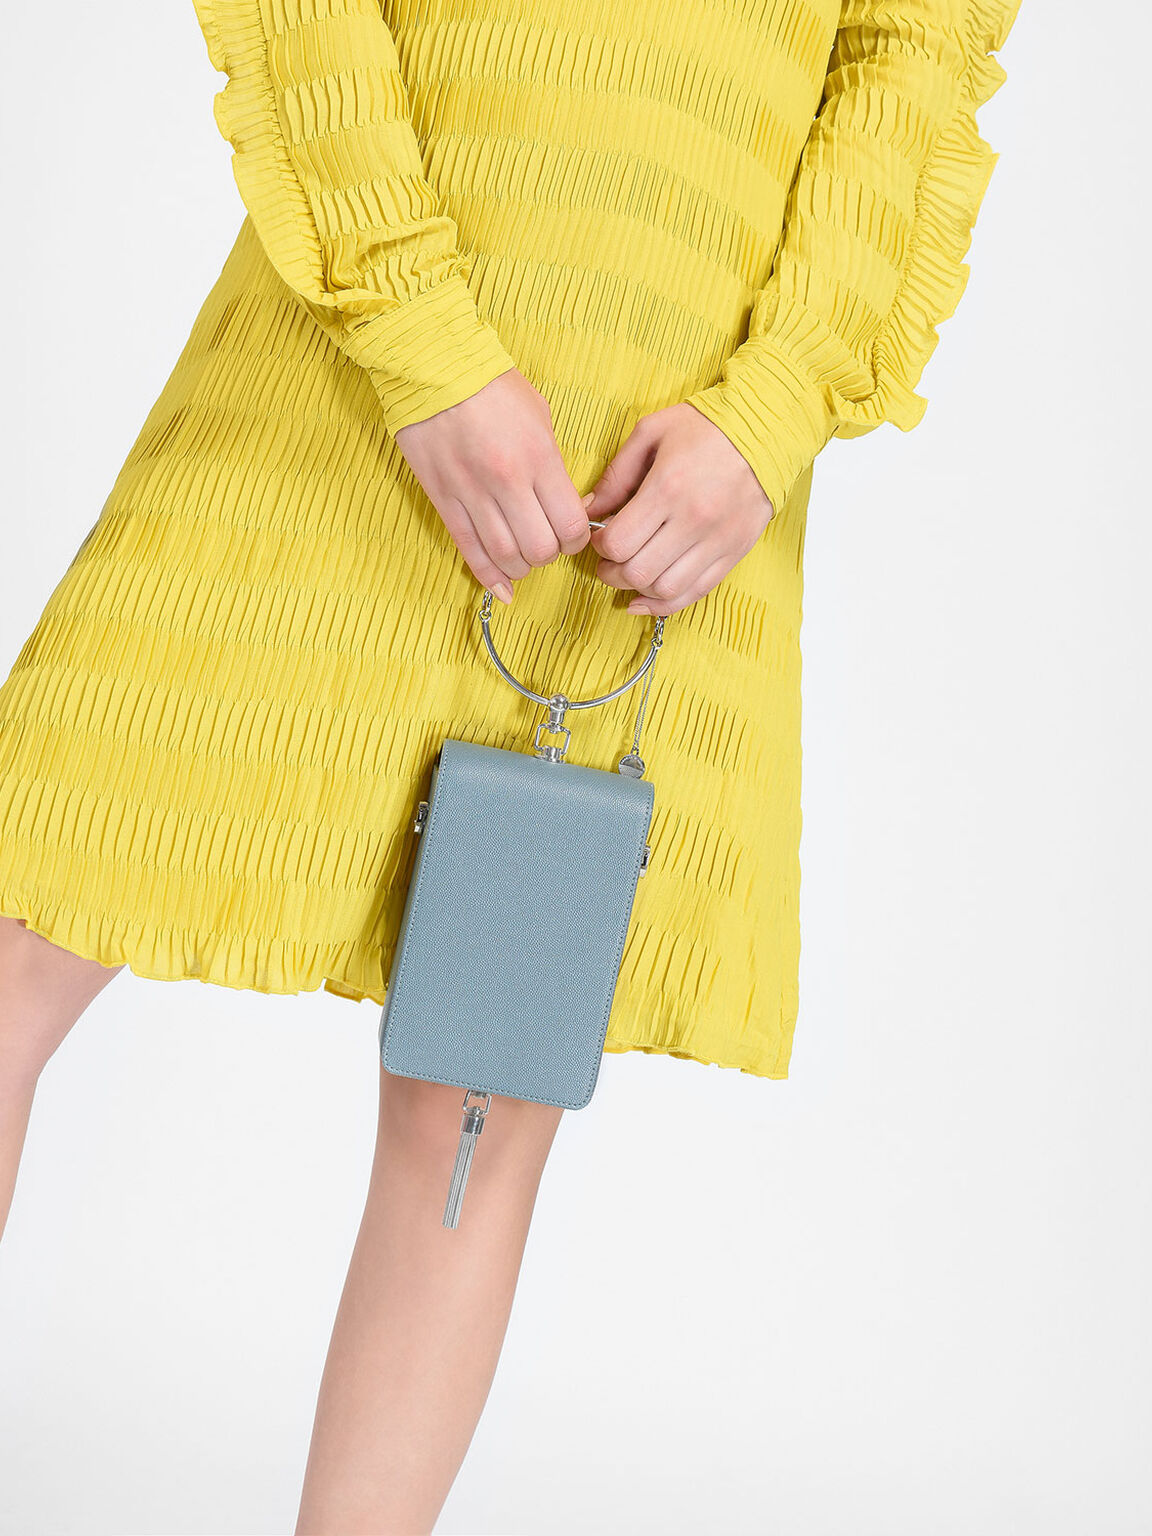 Circular Handle Clutch, Steel Blue, hi-res